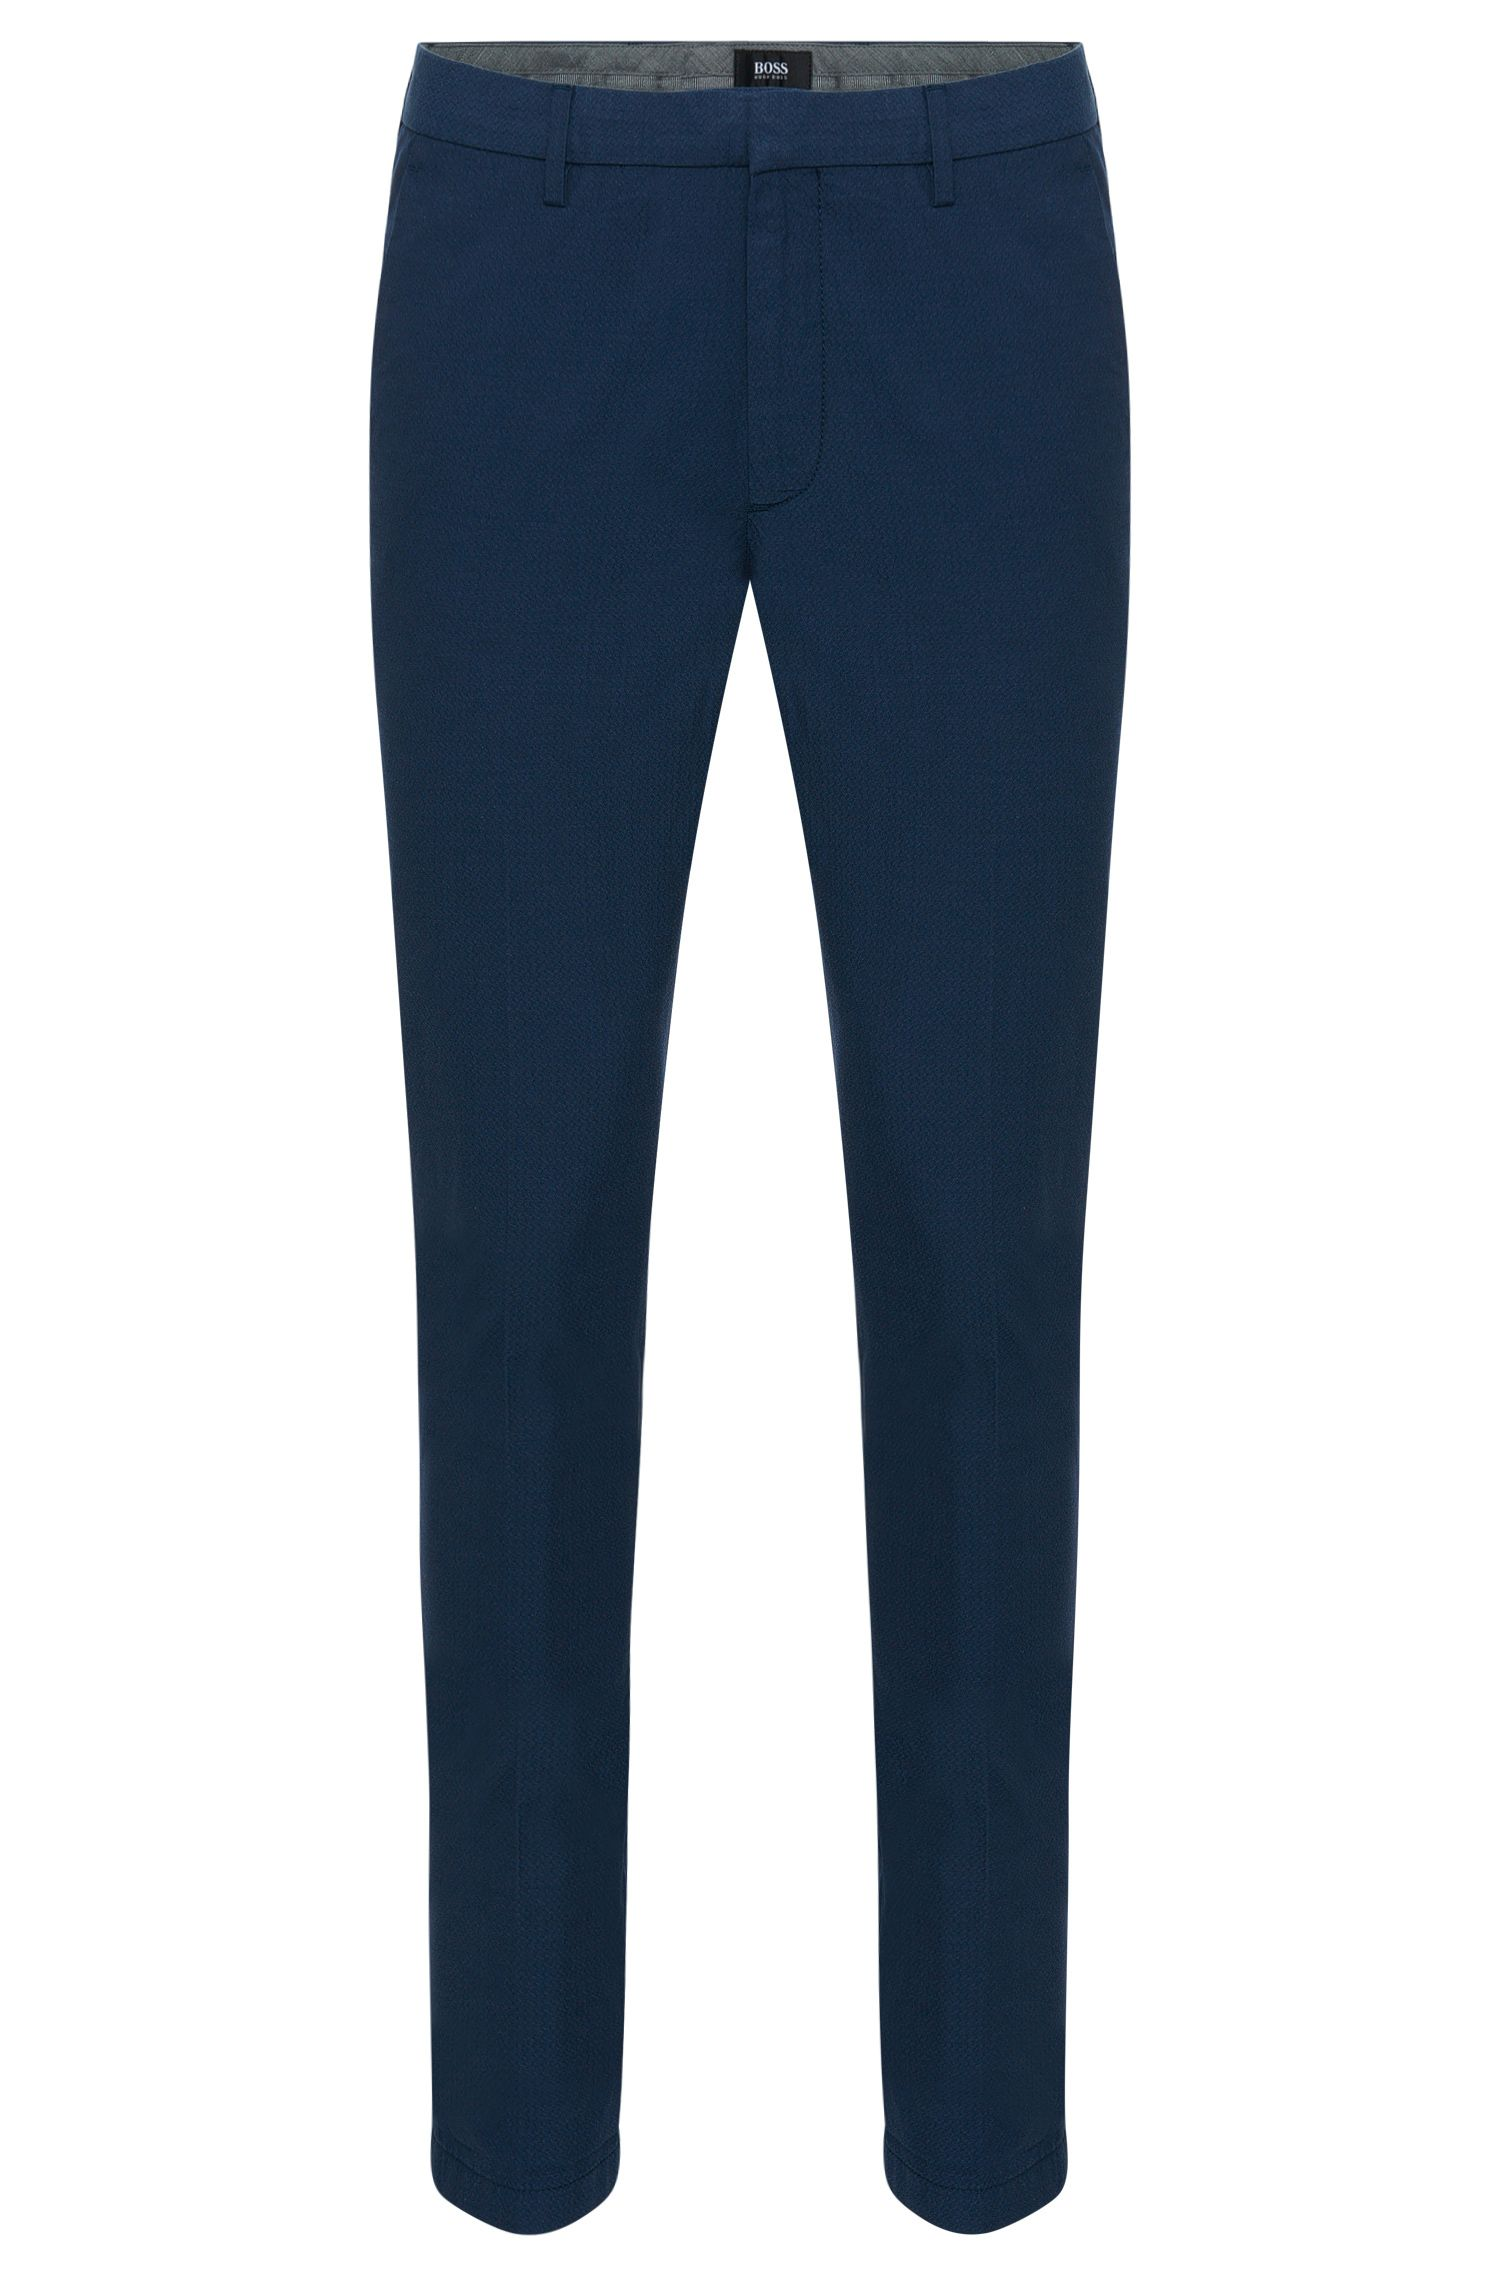 'Kaito-W' | Extra Slim Fit, Stretch Cotton Jacquard Pants